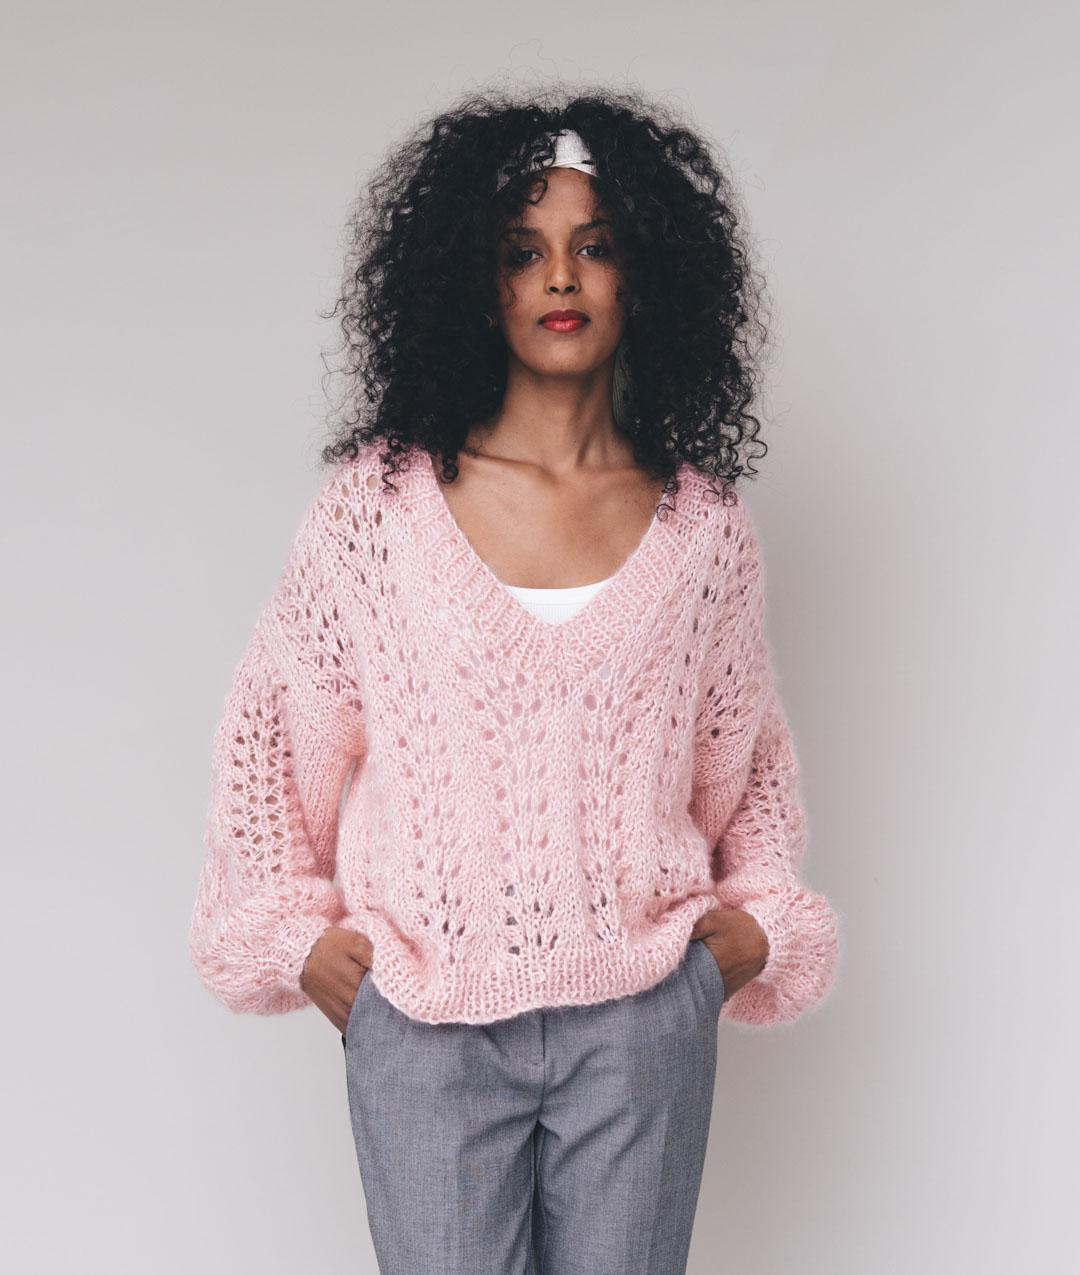 Sweaters and Tops - Wool - PEONY SWEATER - 1